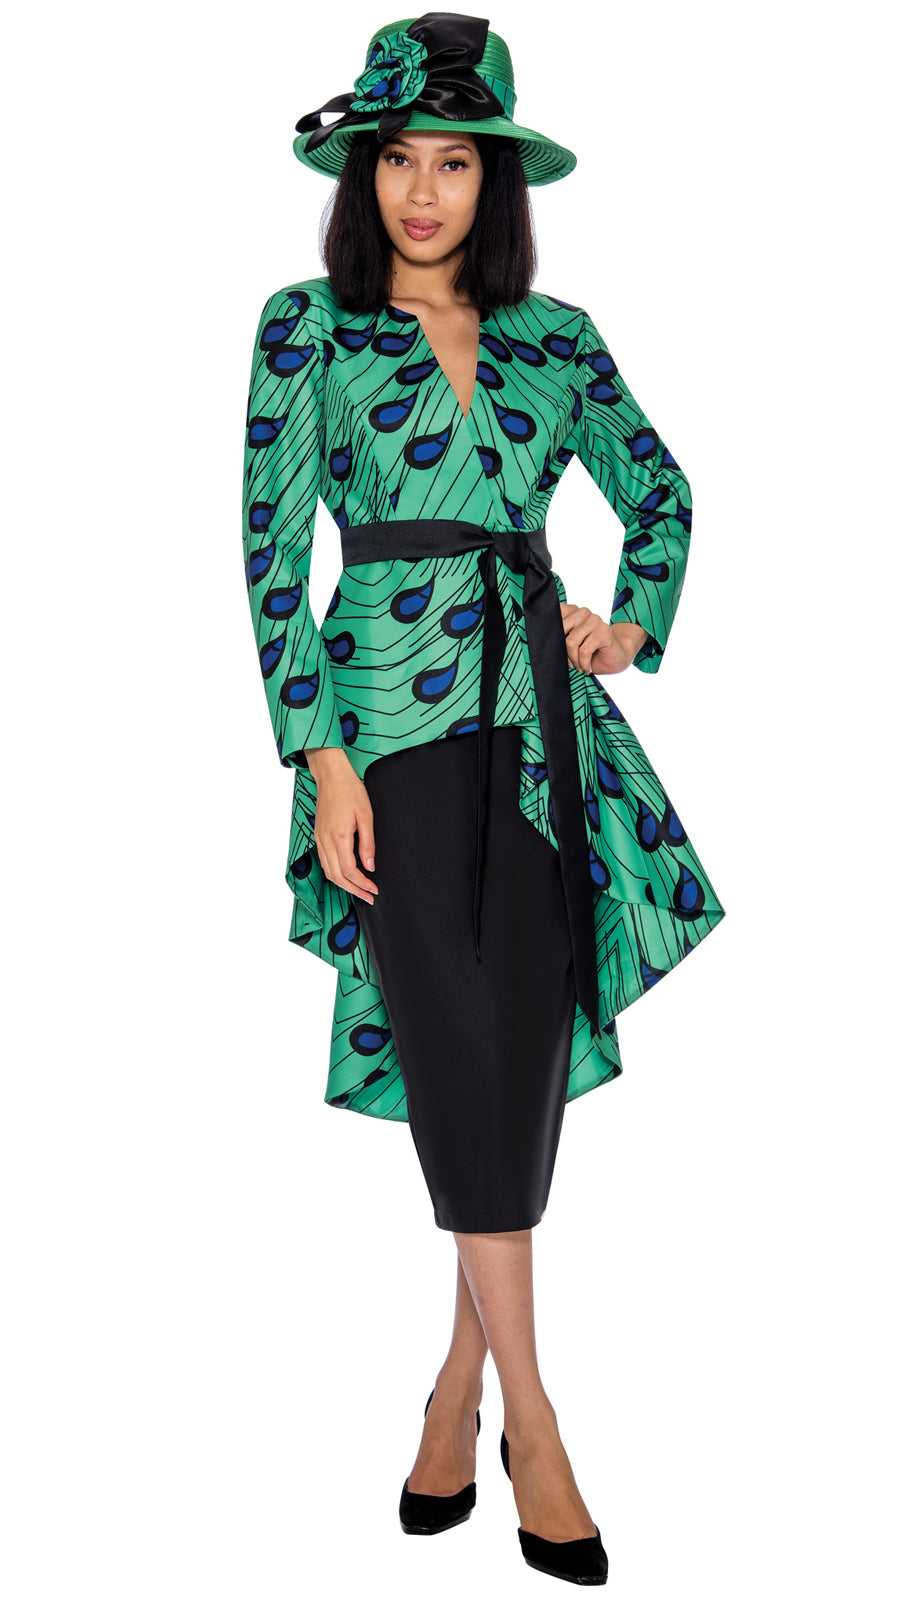 GMI Suit 7362-Green Multi - Church Suits For Less